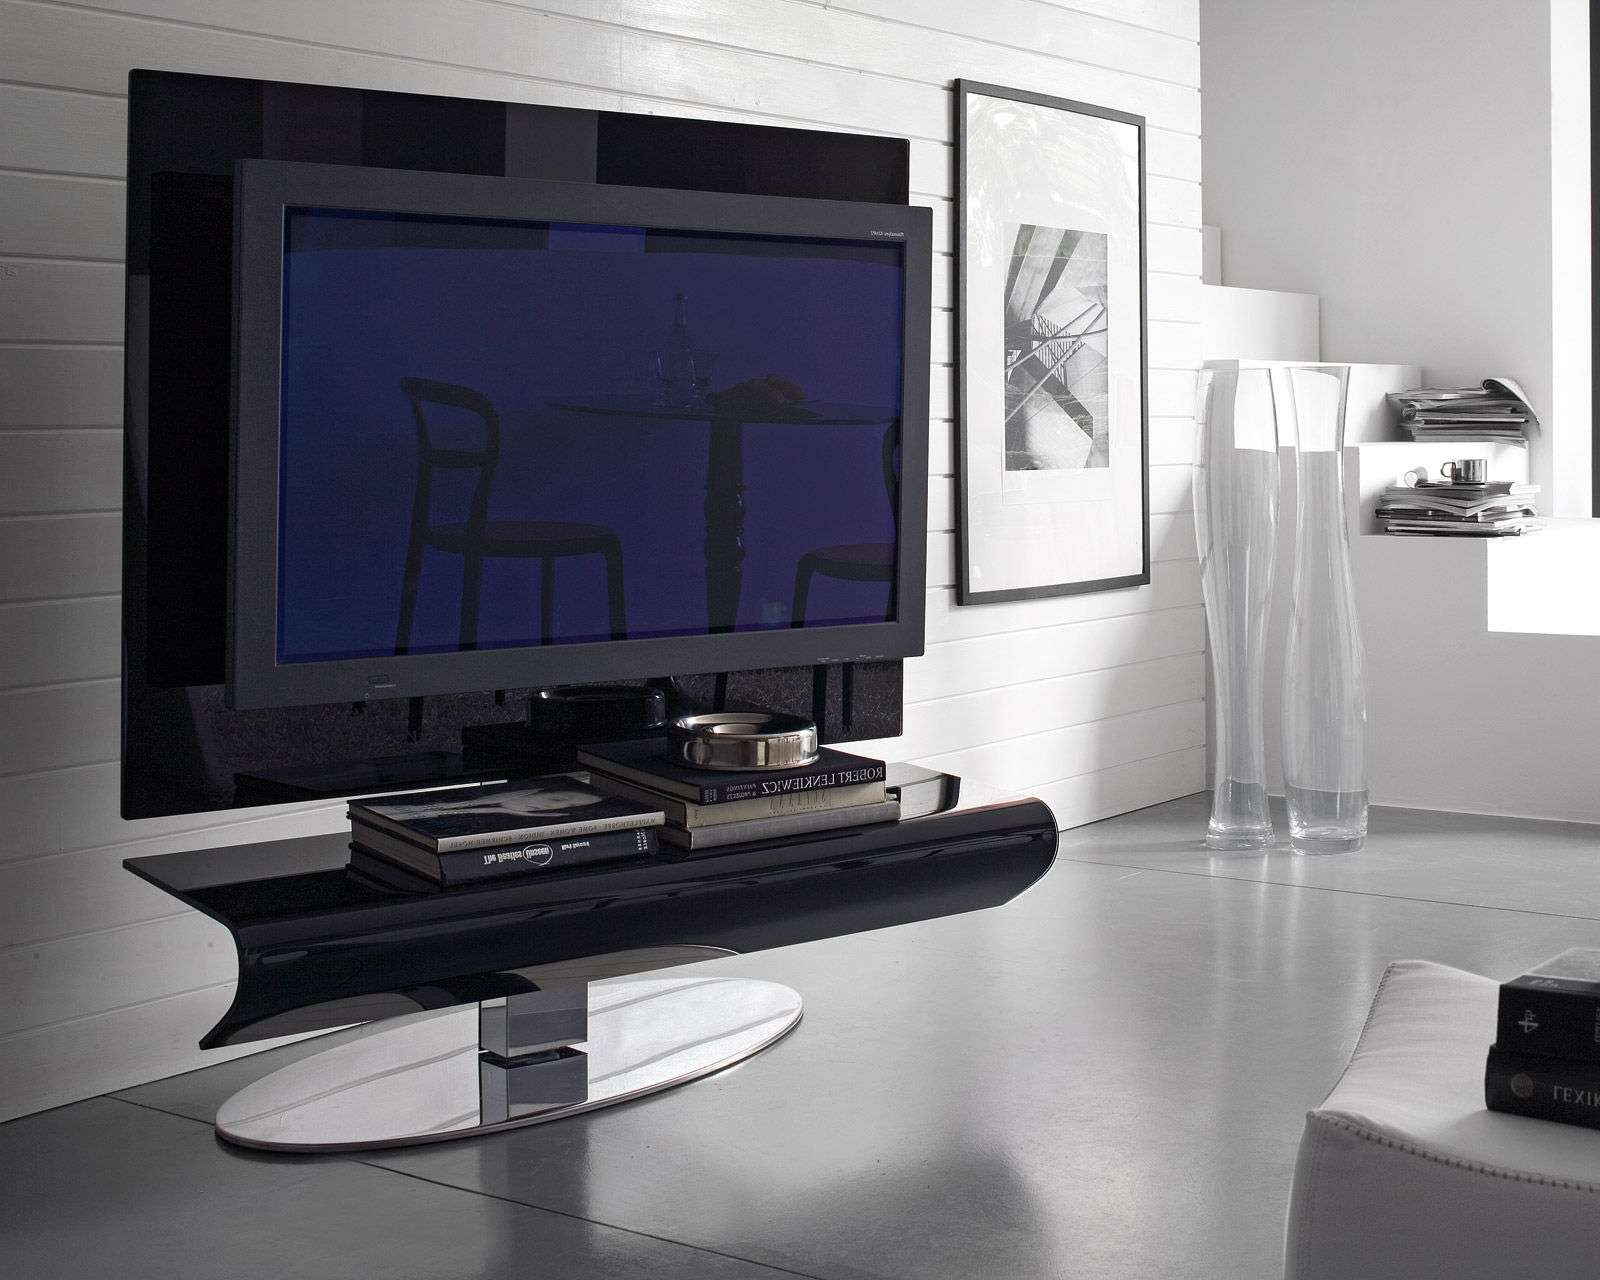 Modern Minimalist Flat Screen Tv Stand With Mount And Mirrored Pertaining To Modern Tv Stands With Mount (View 14 of 15)